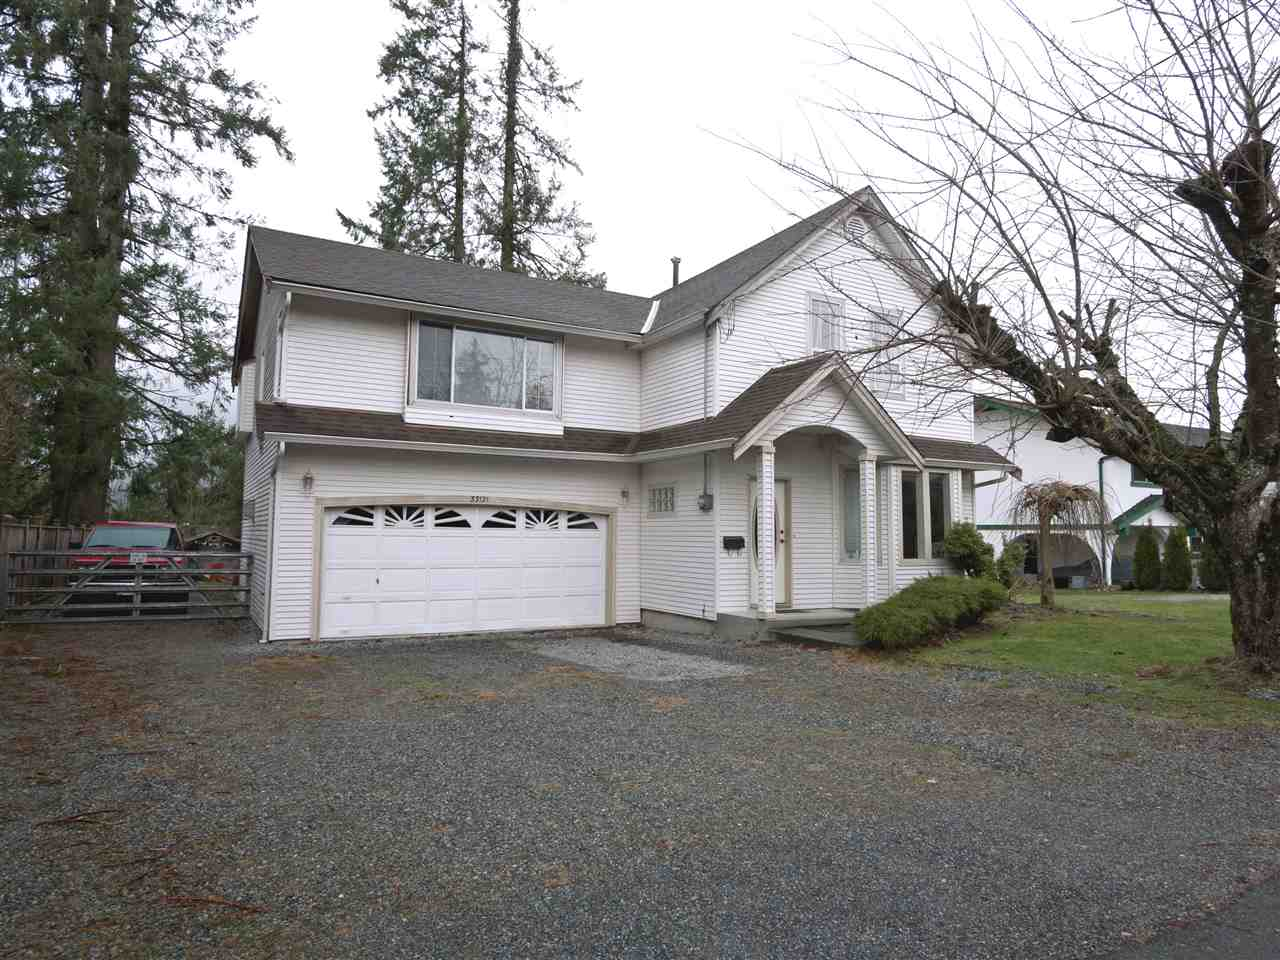 Photo 5: Photos: 33121 CHERRY Avenue in Mission: Mission BC House for sale : MLS® # R2236876